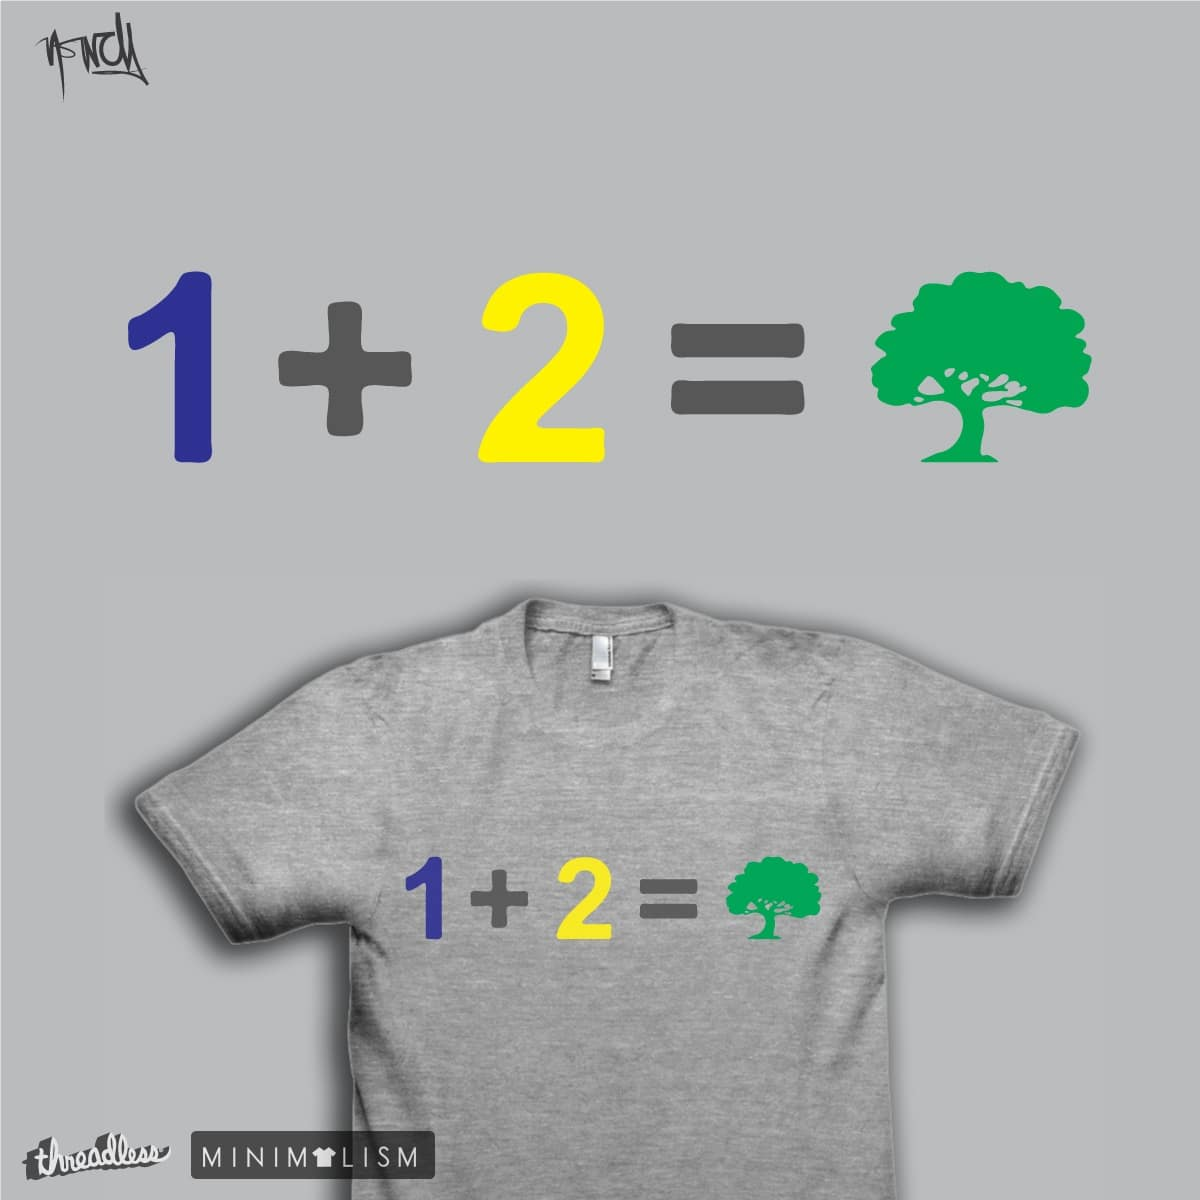 Addition of Numbers and Colors by je14 on Threadless